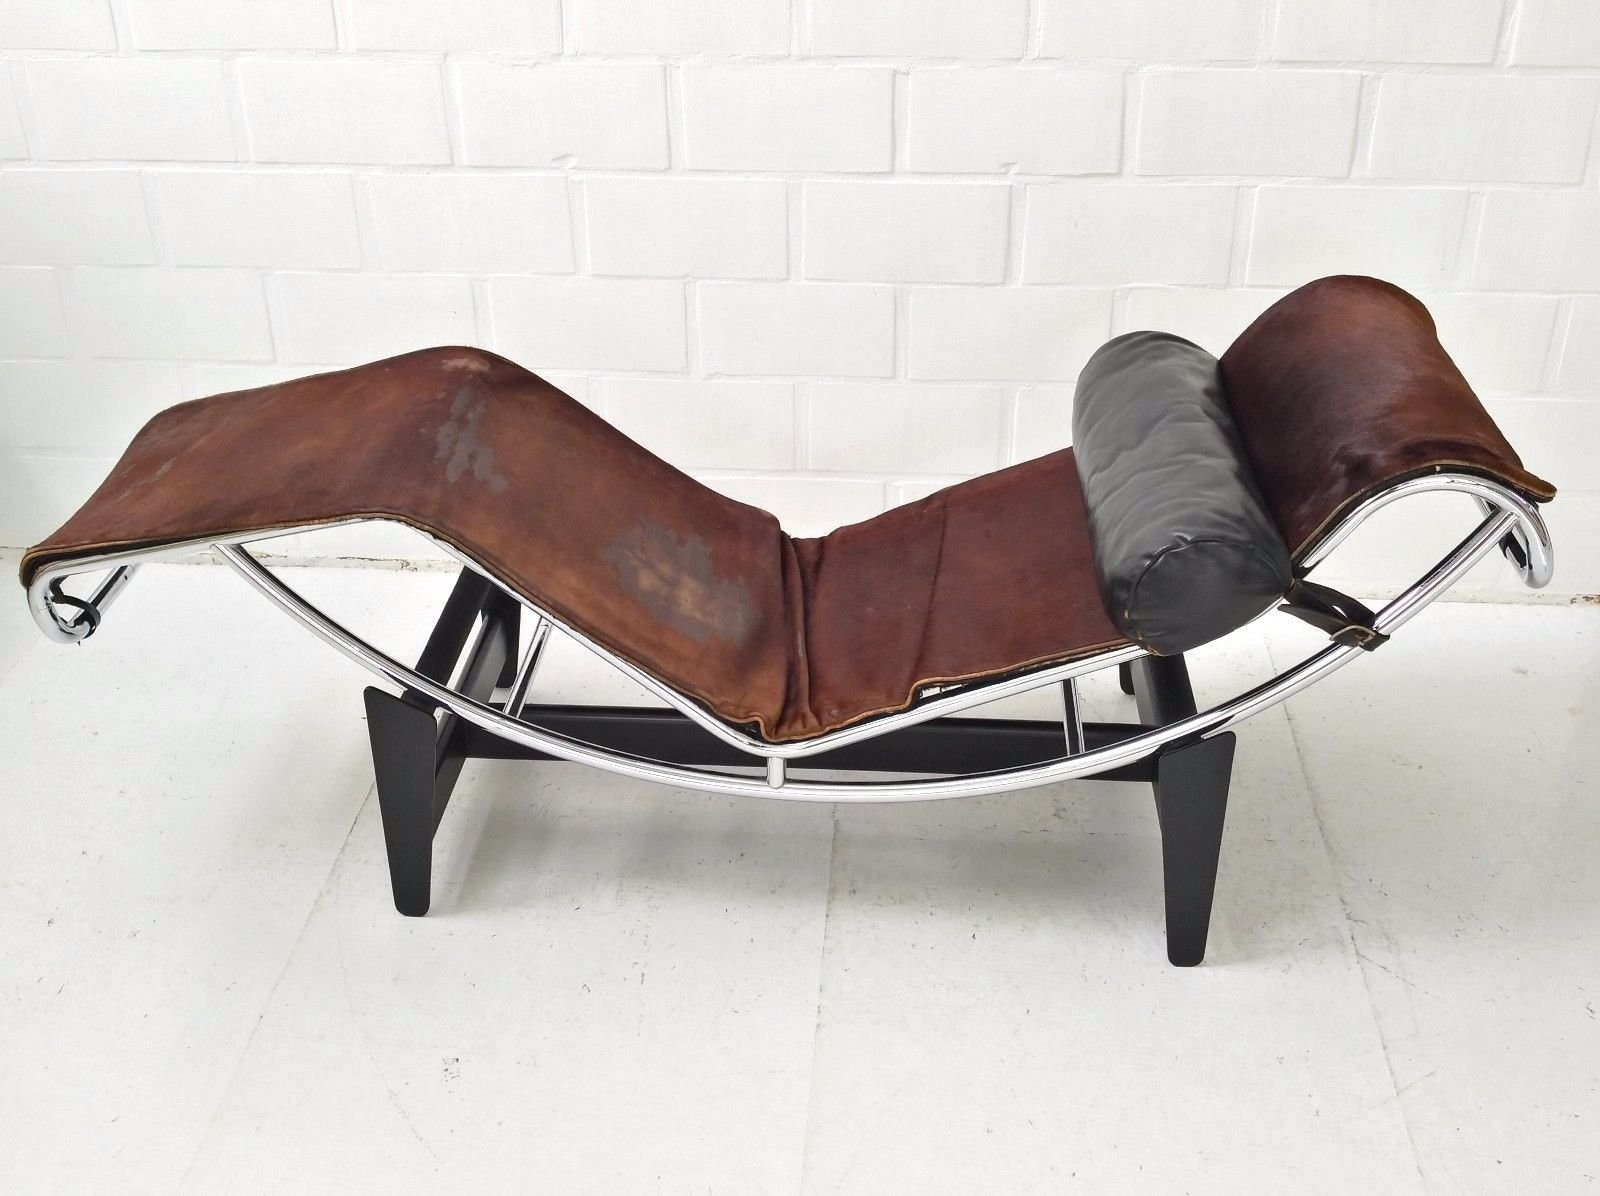 Lc4 chaise longue by le corbusier charlotte perriand for Chaise longue design le corbusier